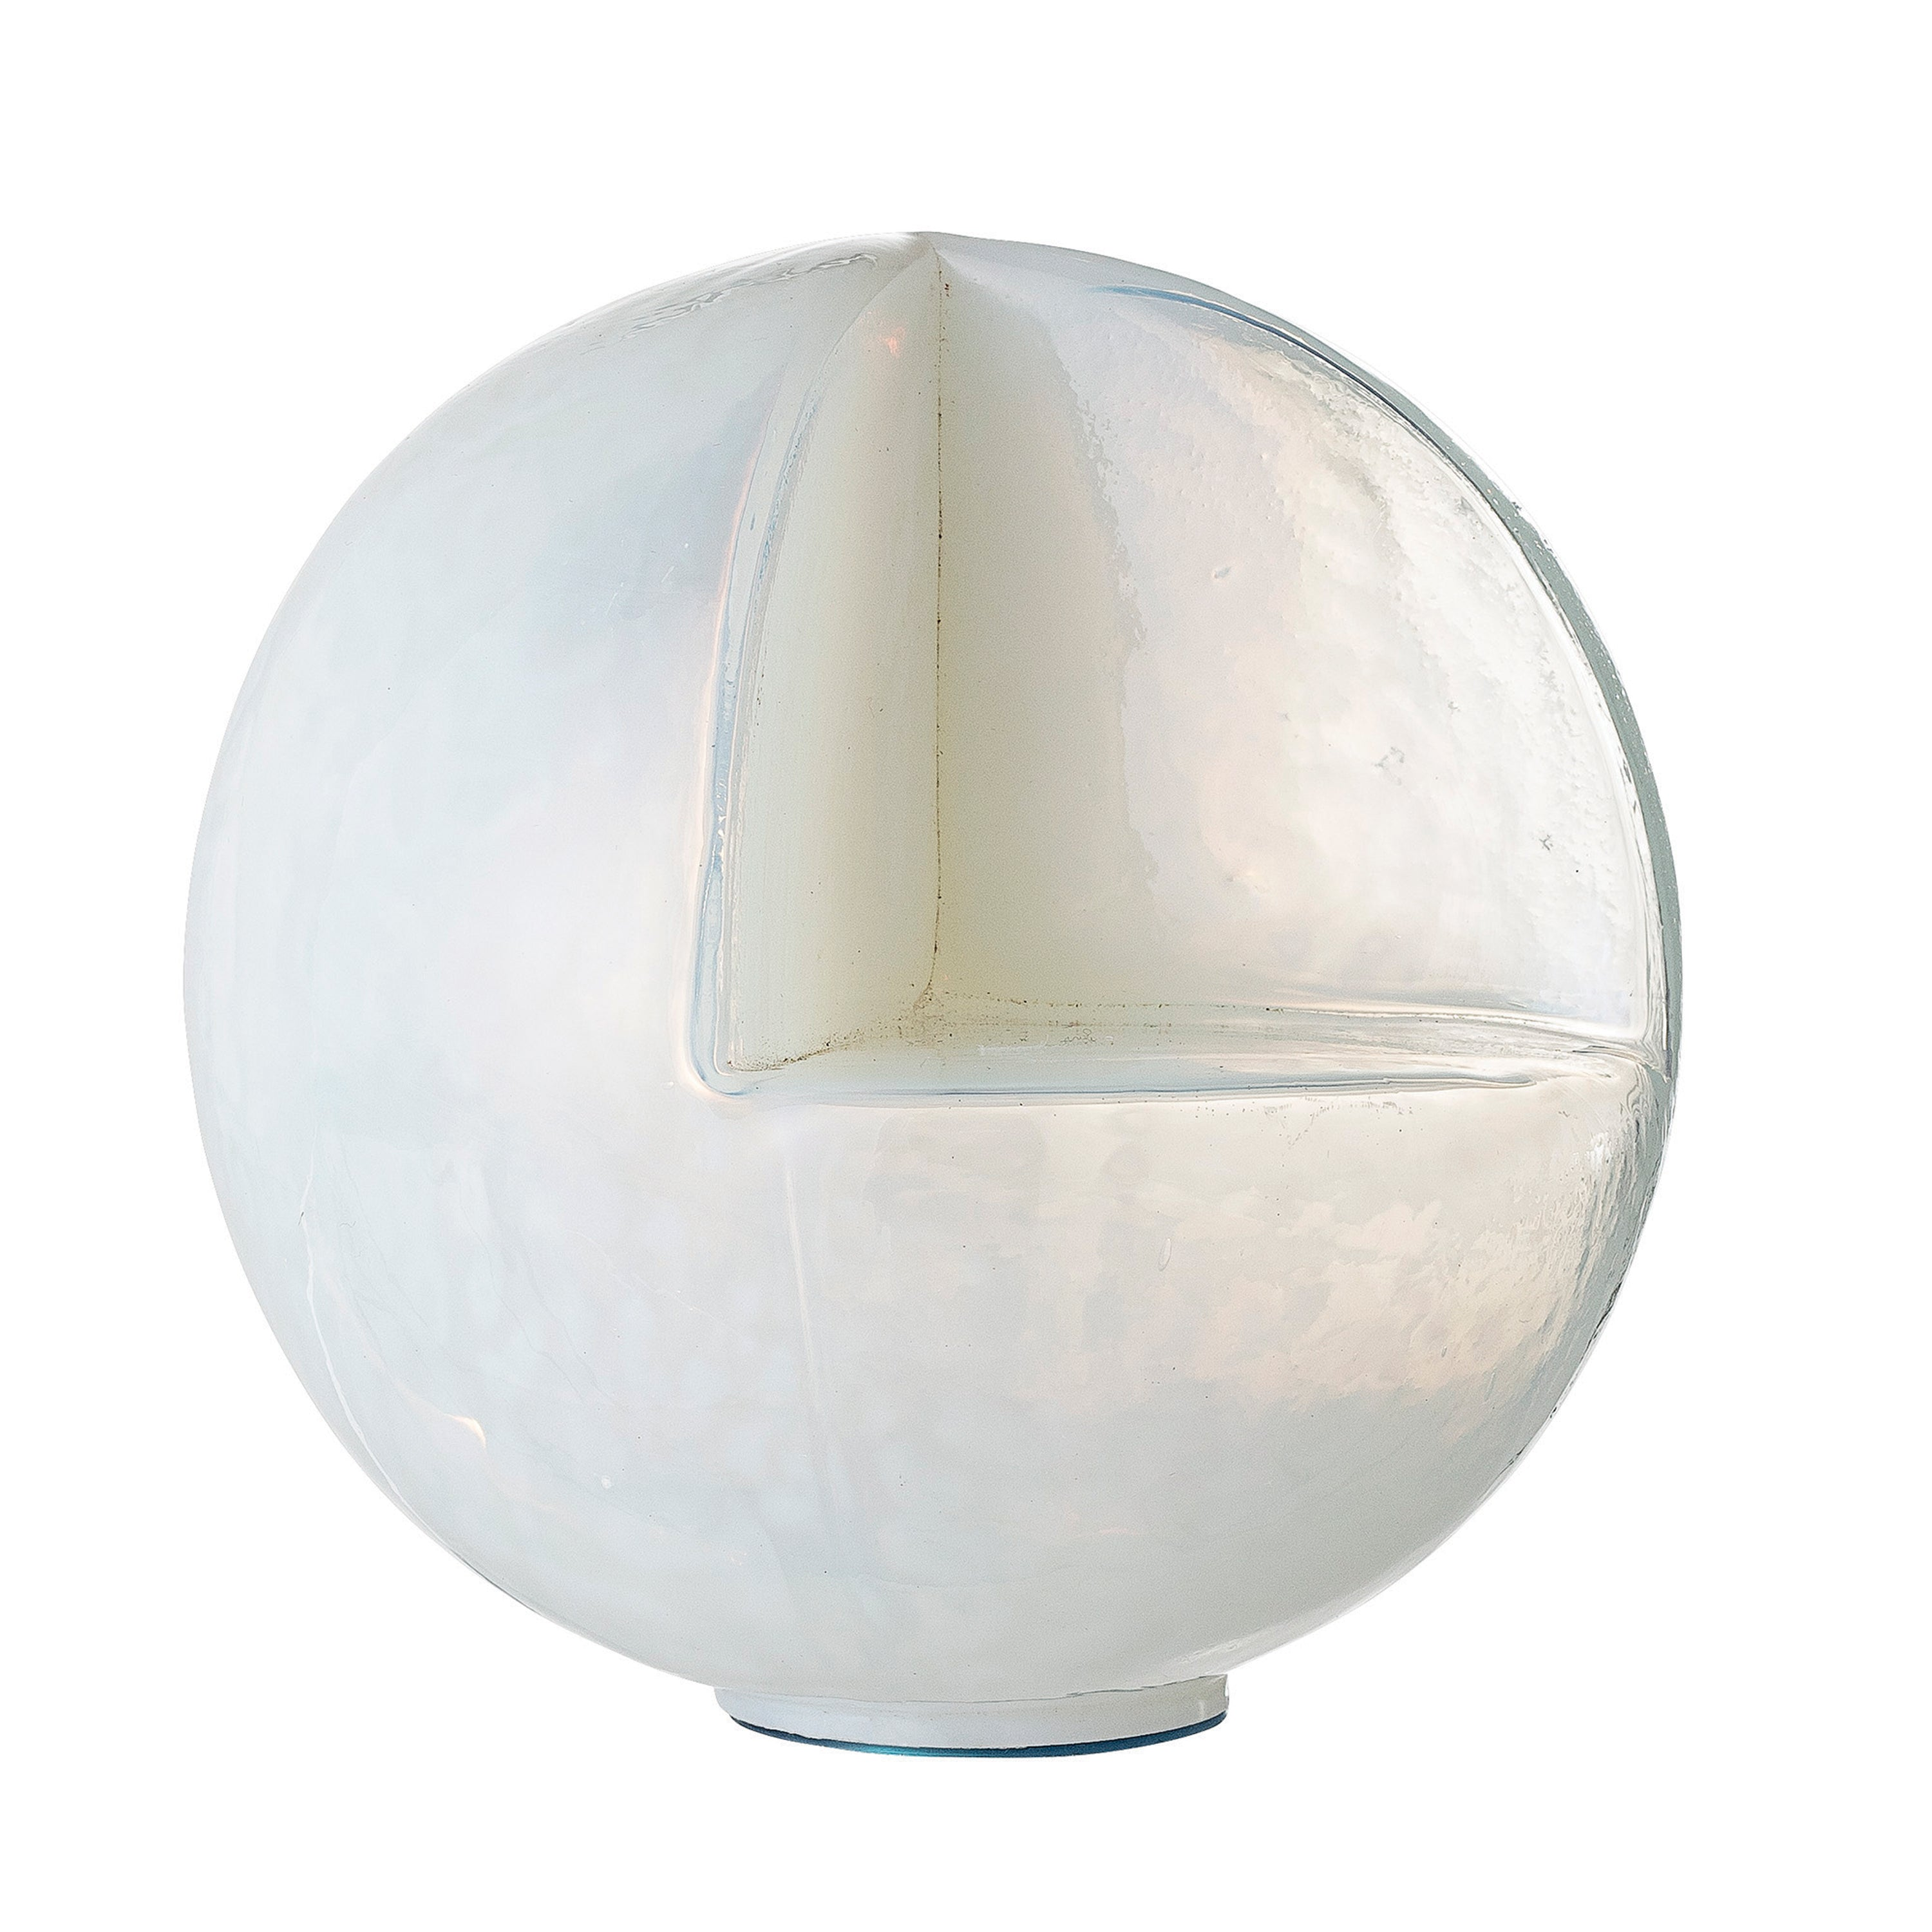 "5.5""R Glass Sphere-Shaped Candleholder with Cut Out Ledge"